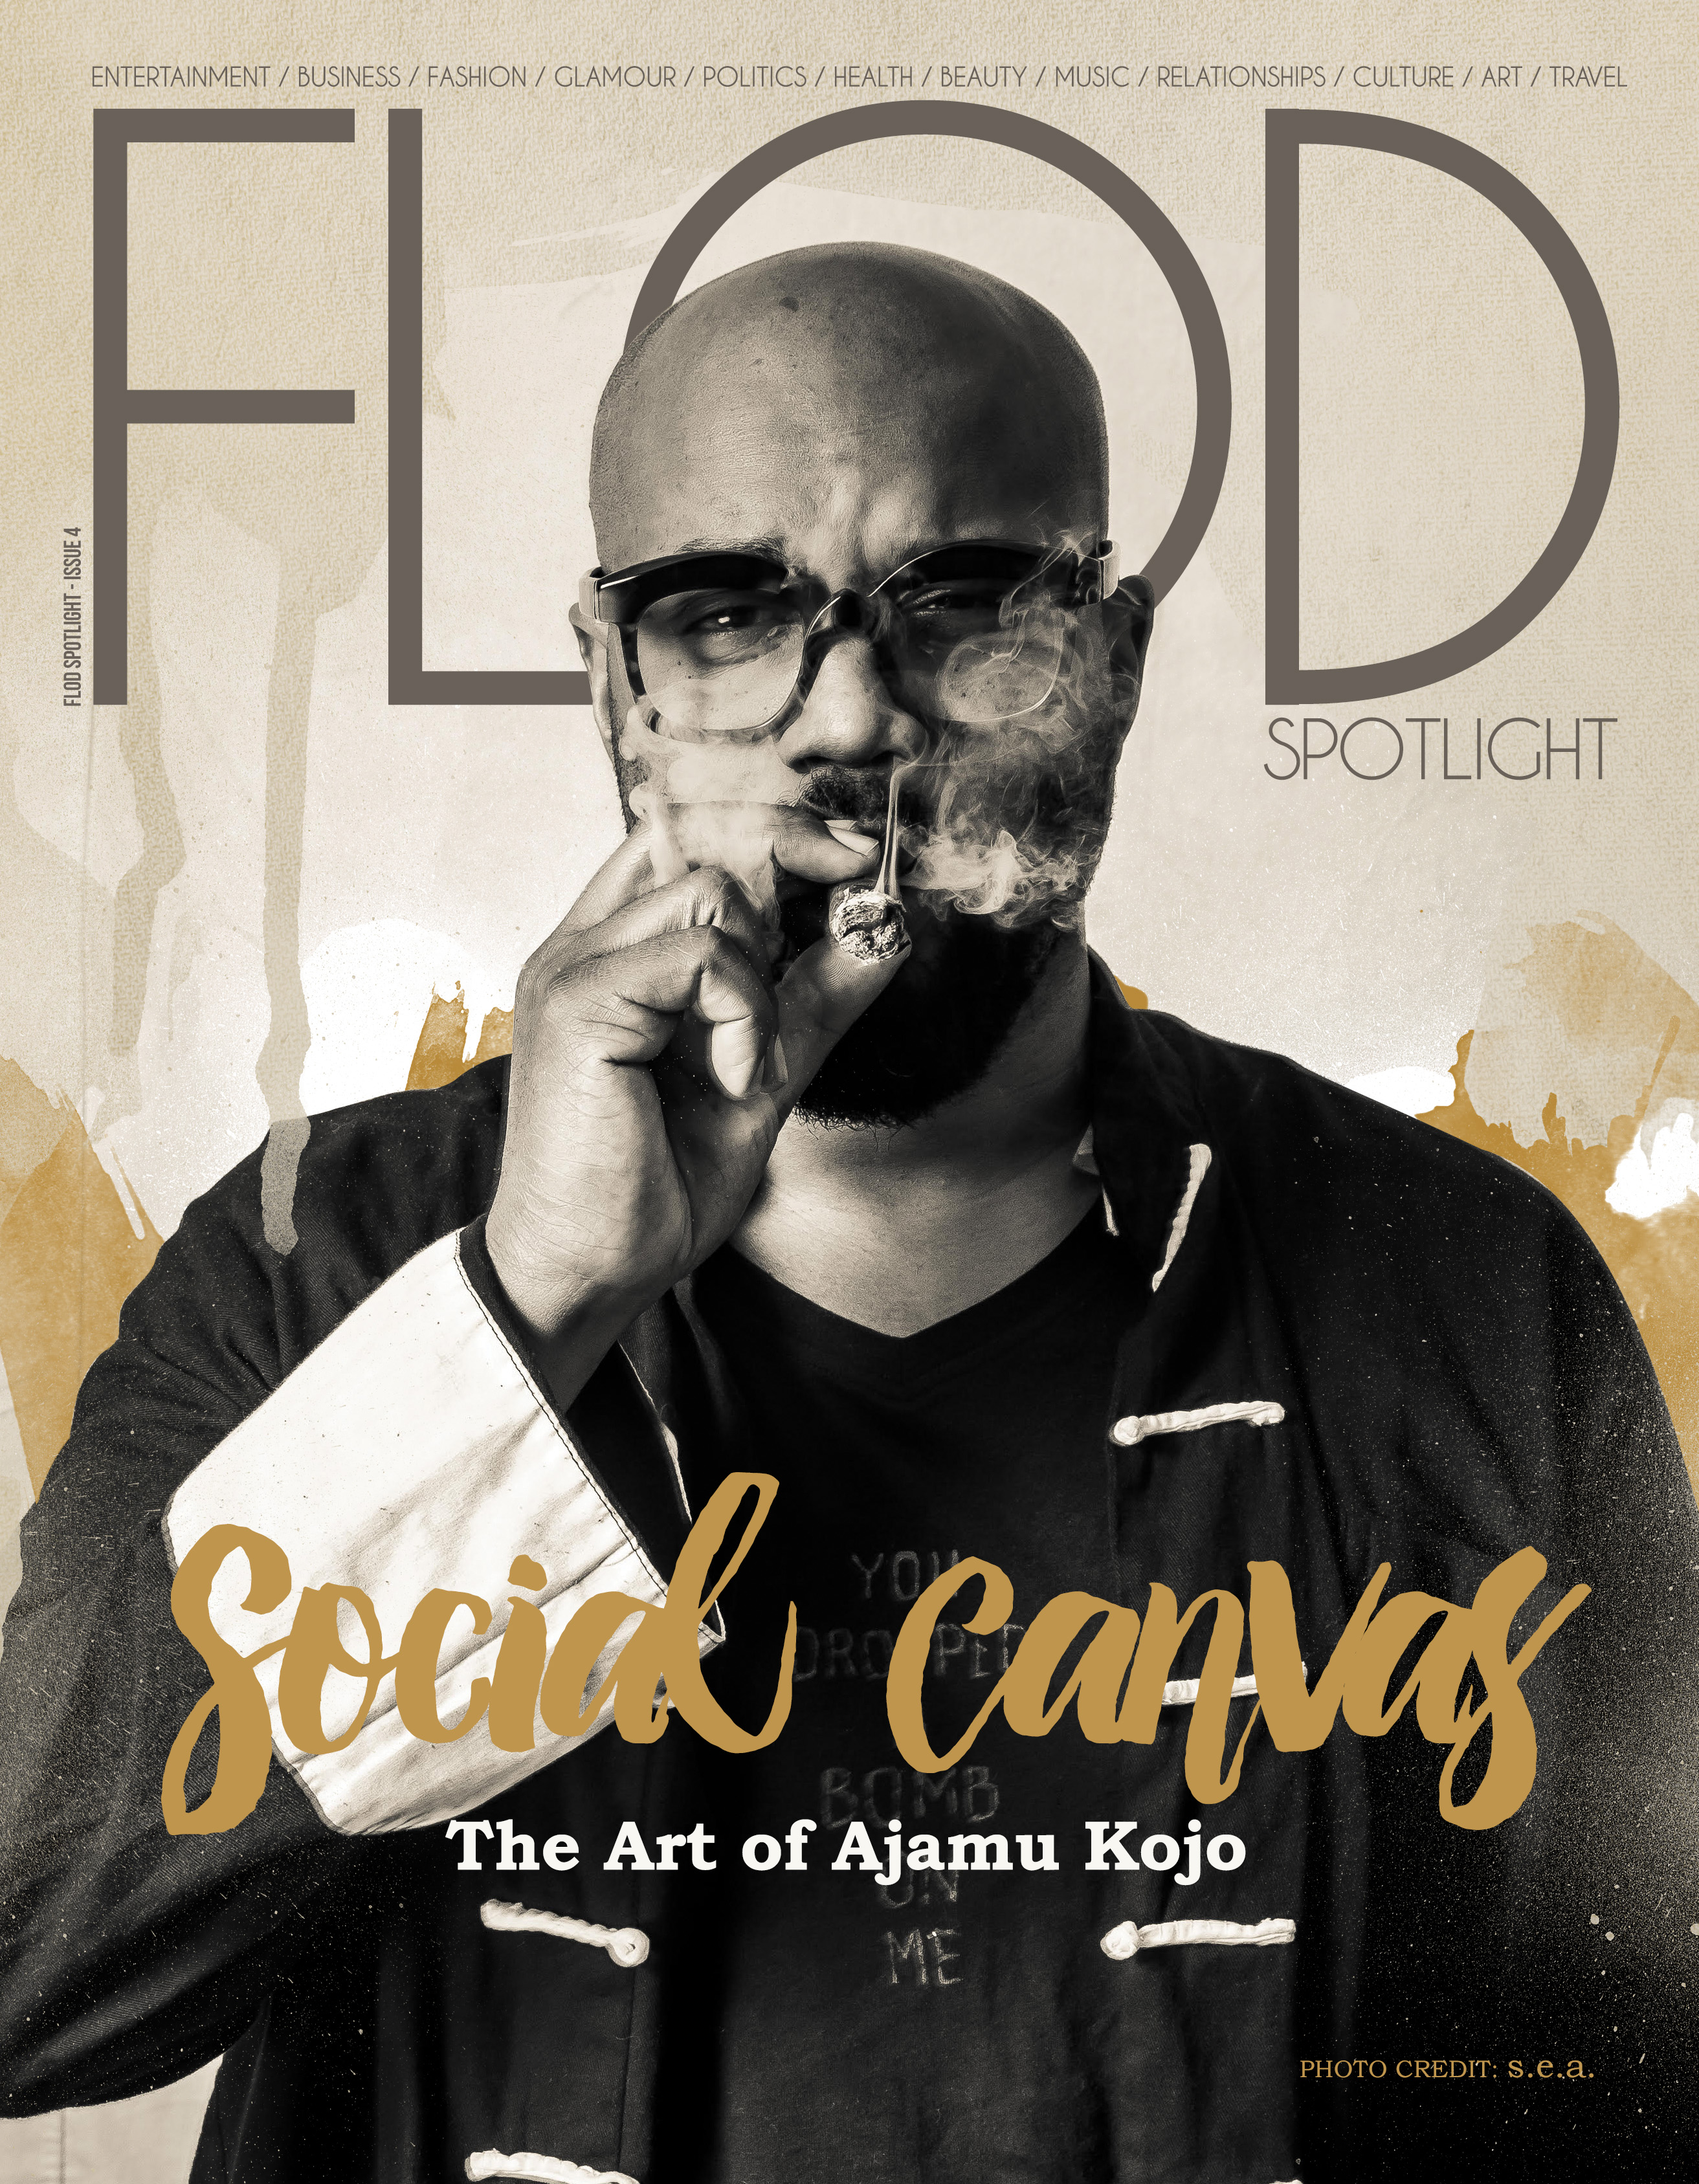 Issue 4 – Social Canvas: The Art of Ajamu Kojo